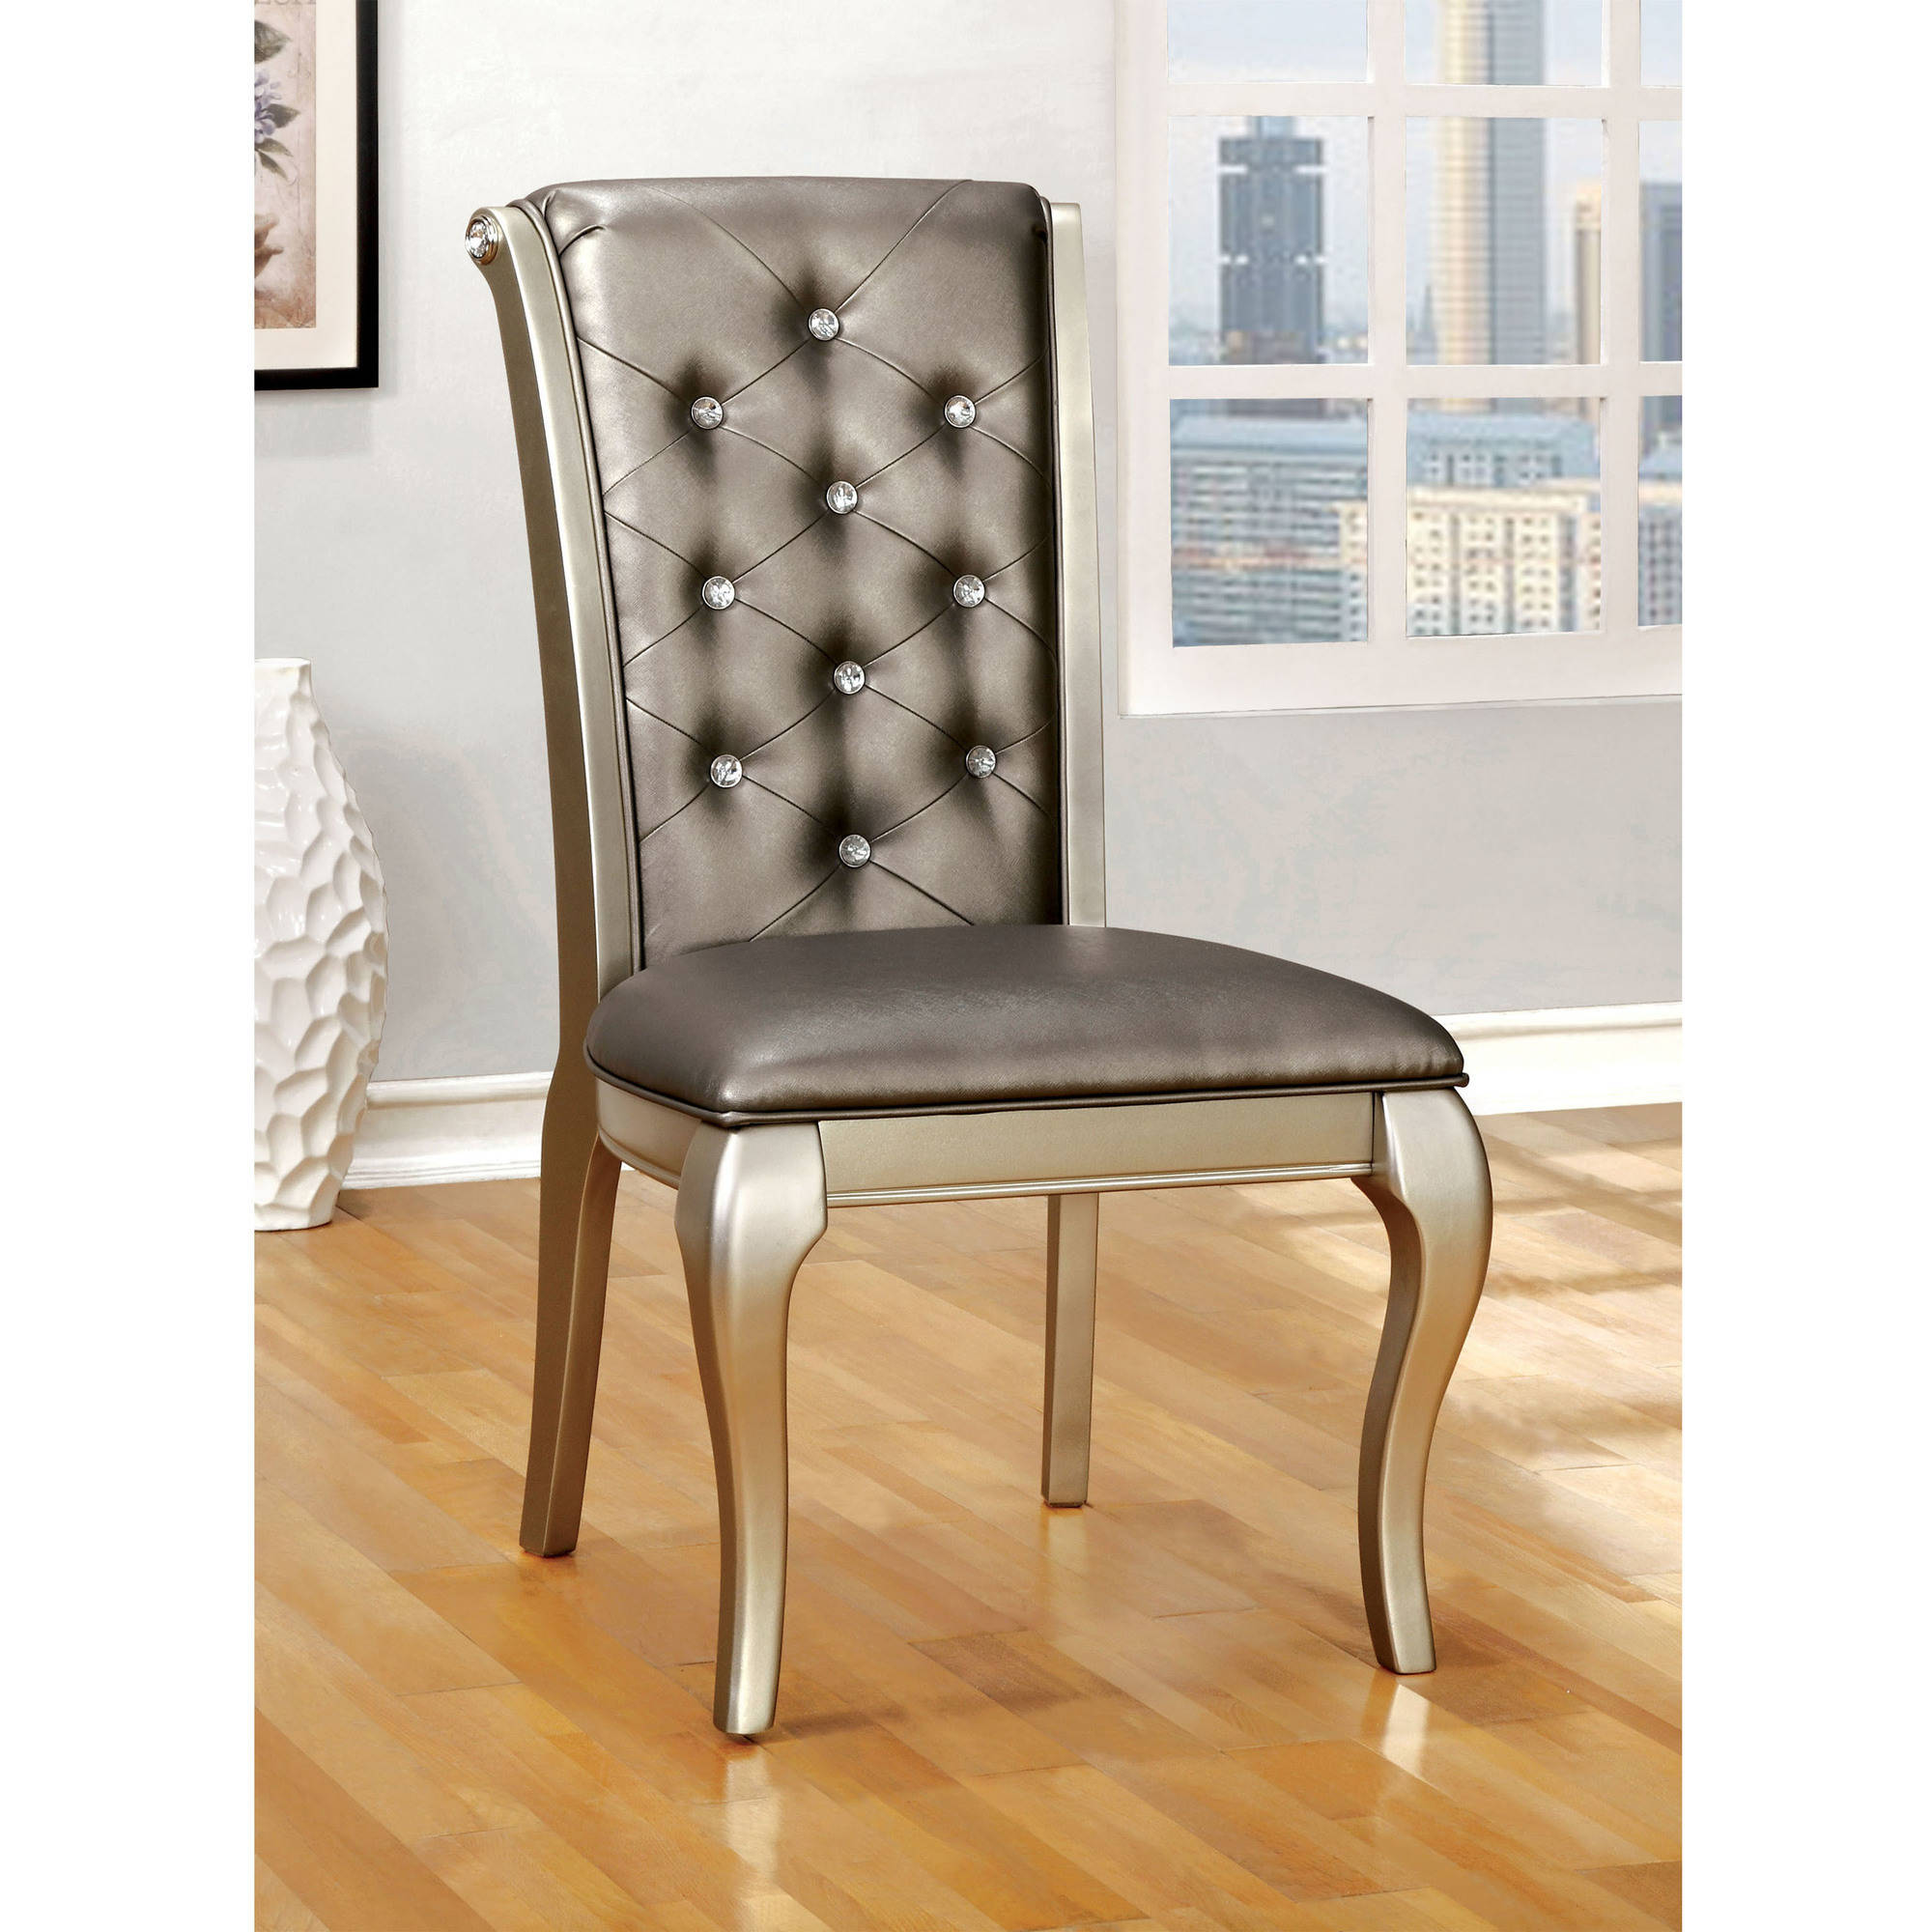 Furniture of America Selina Contemporary Scrolled-Back Dining Chair, Silver, 2pk